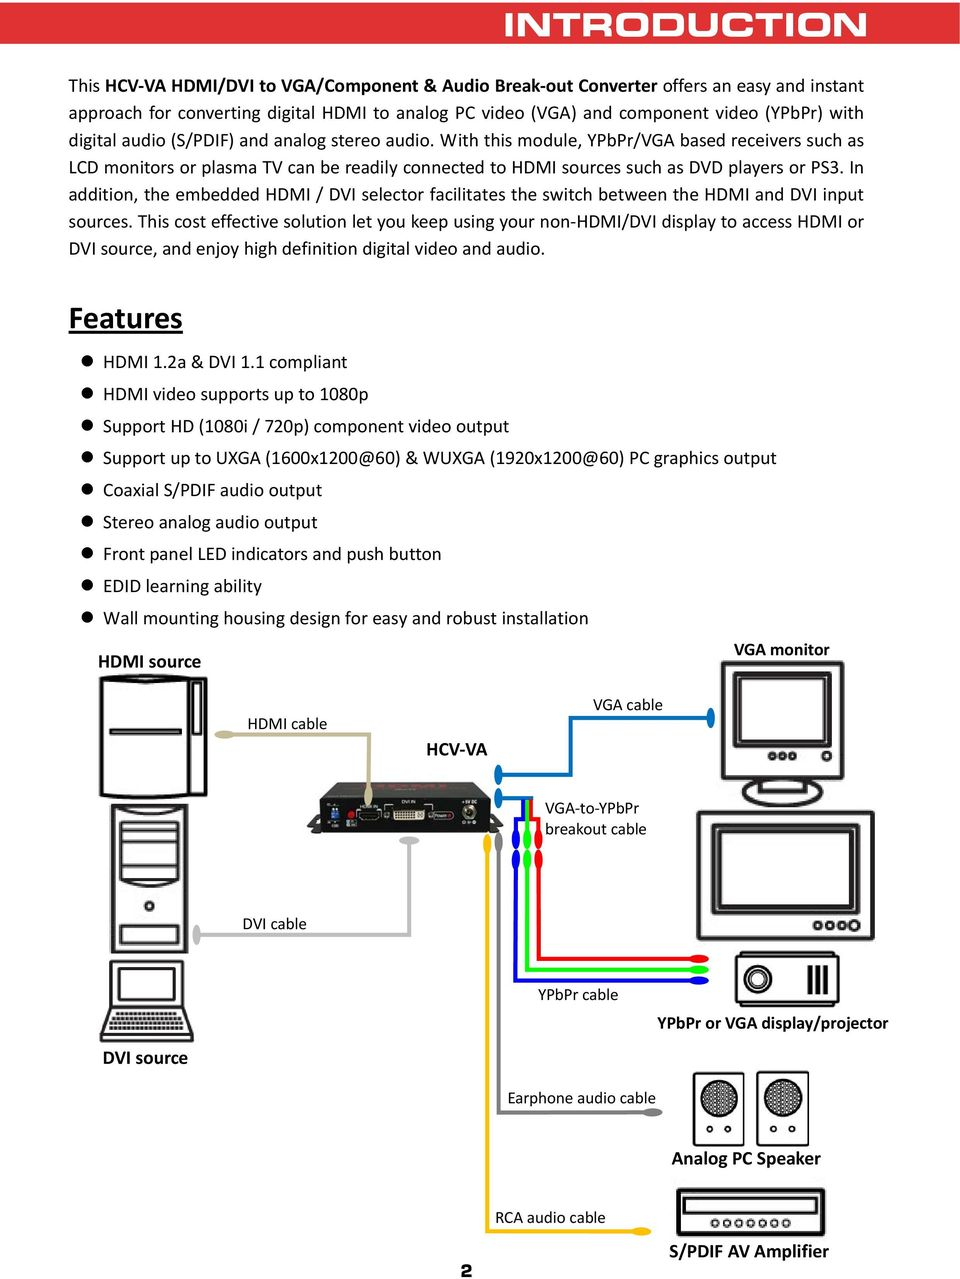 In addition, the embedded HDMI / DVI selector facilitates the switch between the HDMI and DVI input sources.